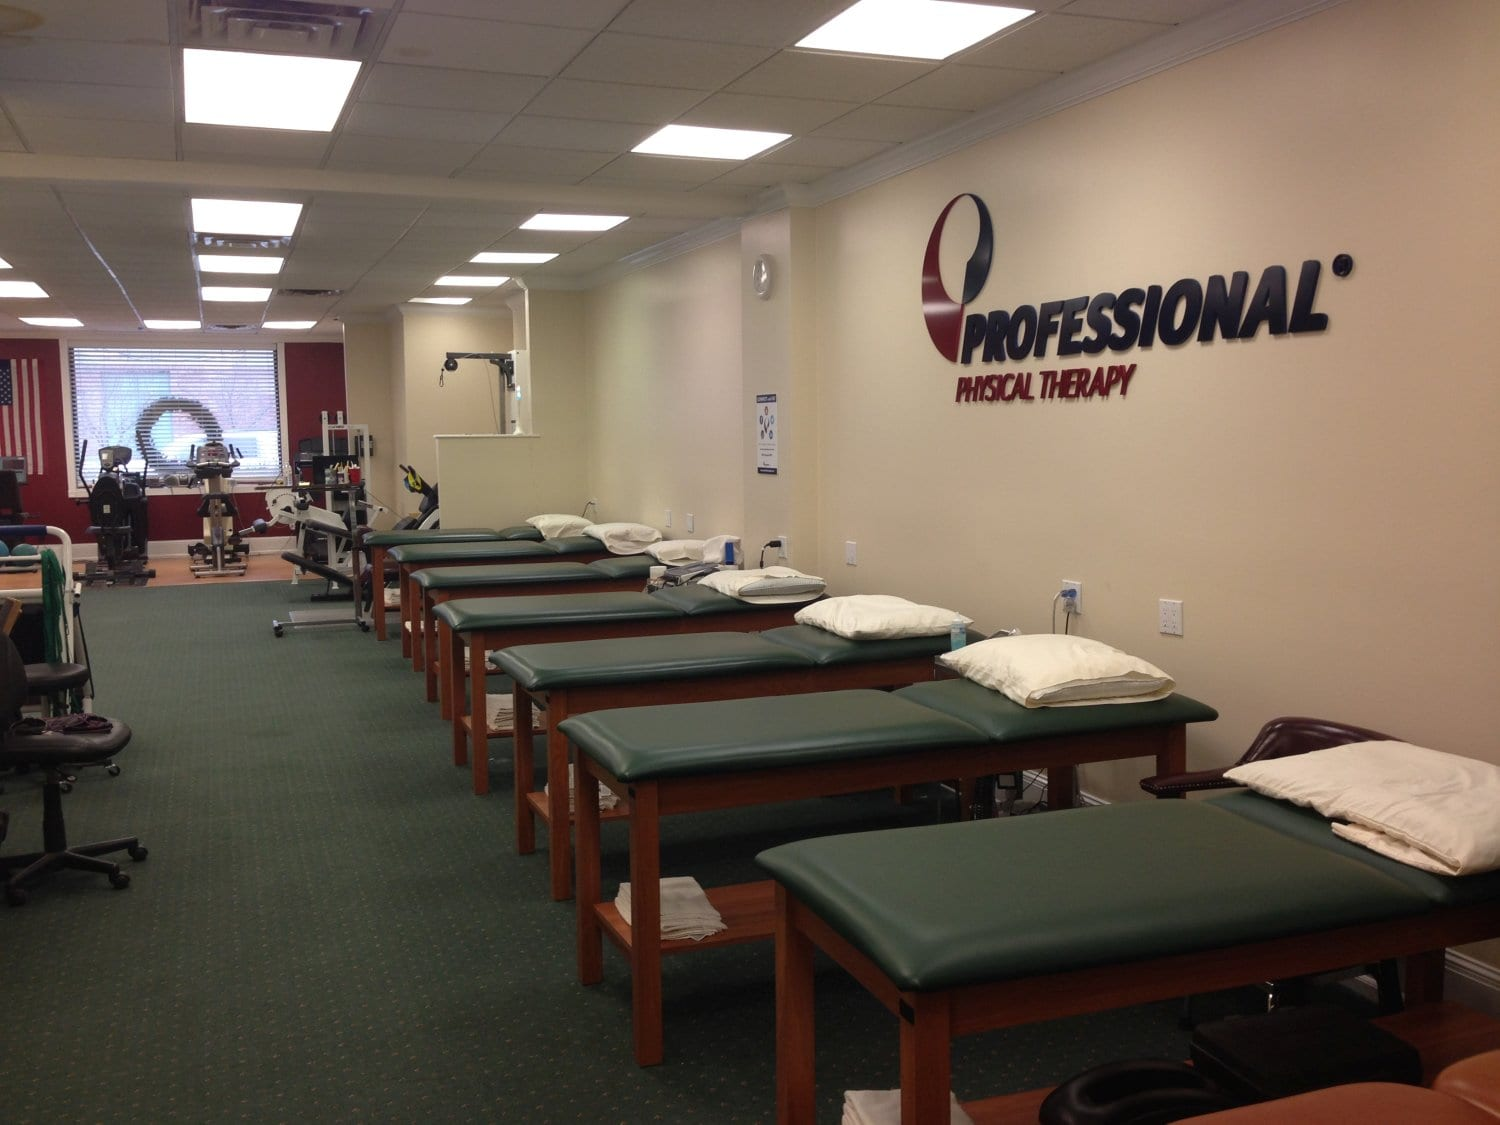 Here is an image of seven clean beds at our physical therapy clinic in Greenlawn, New York.